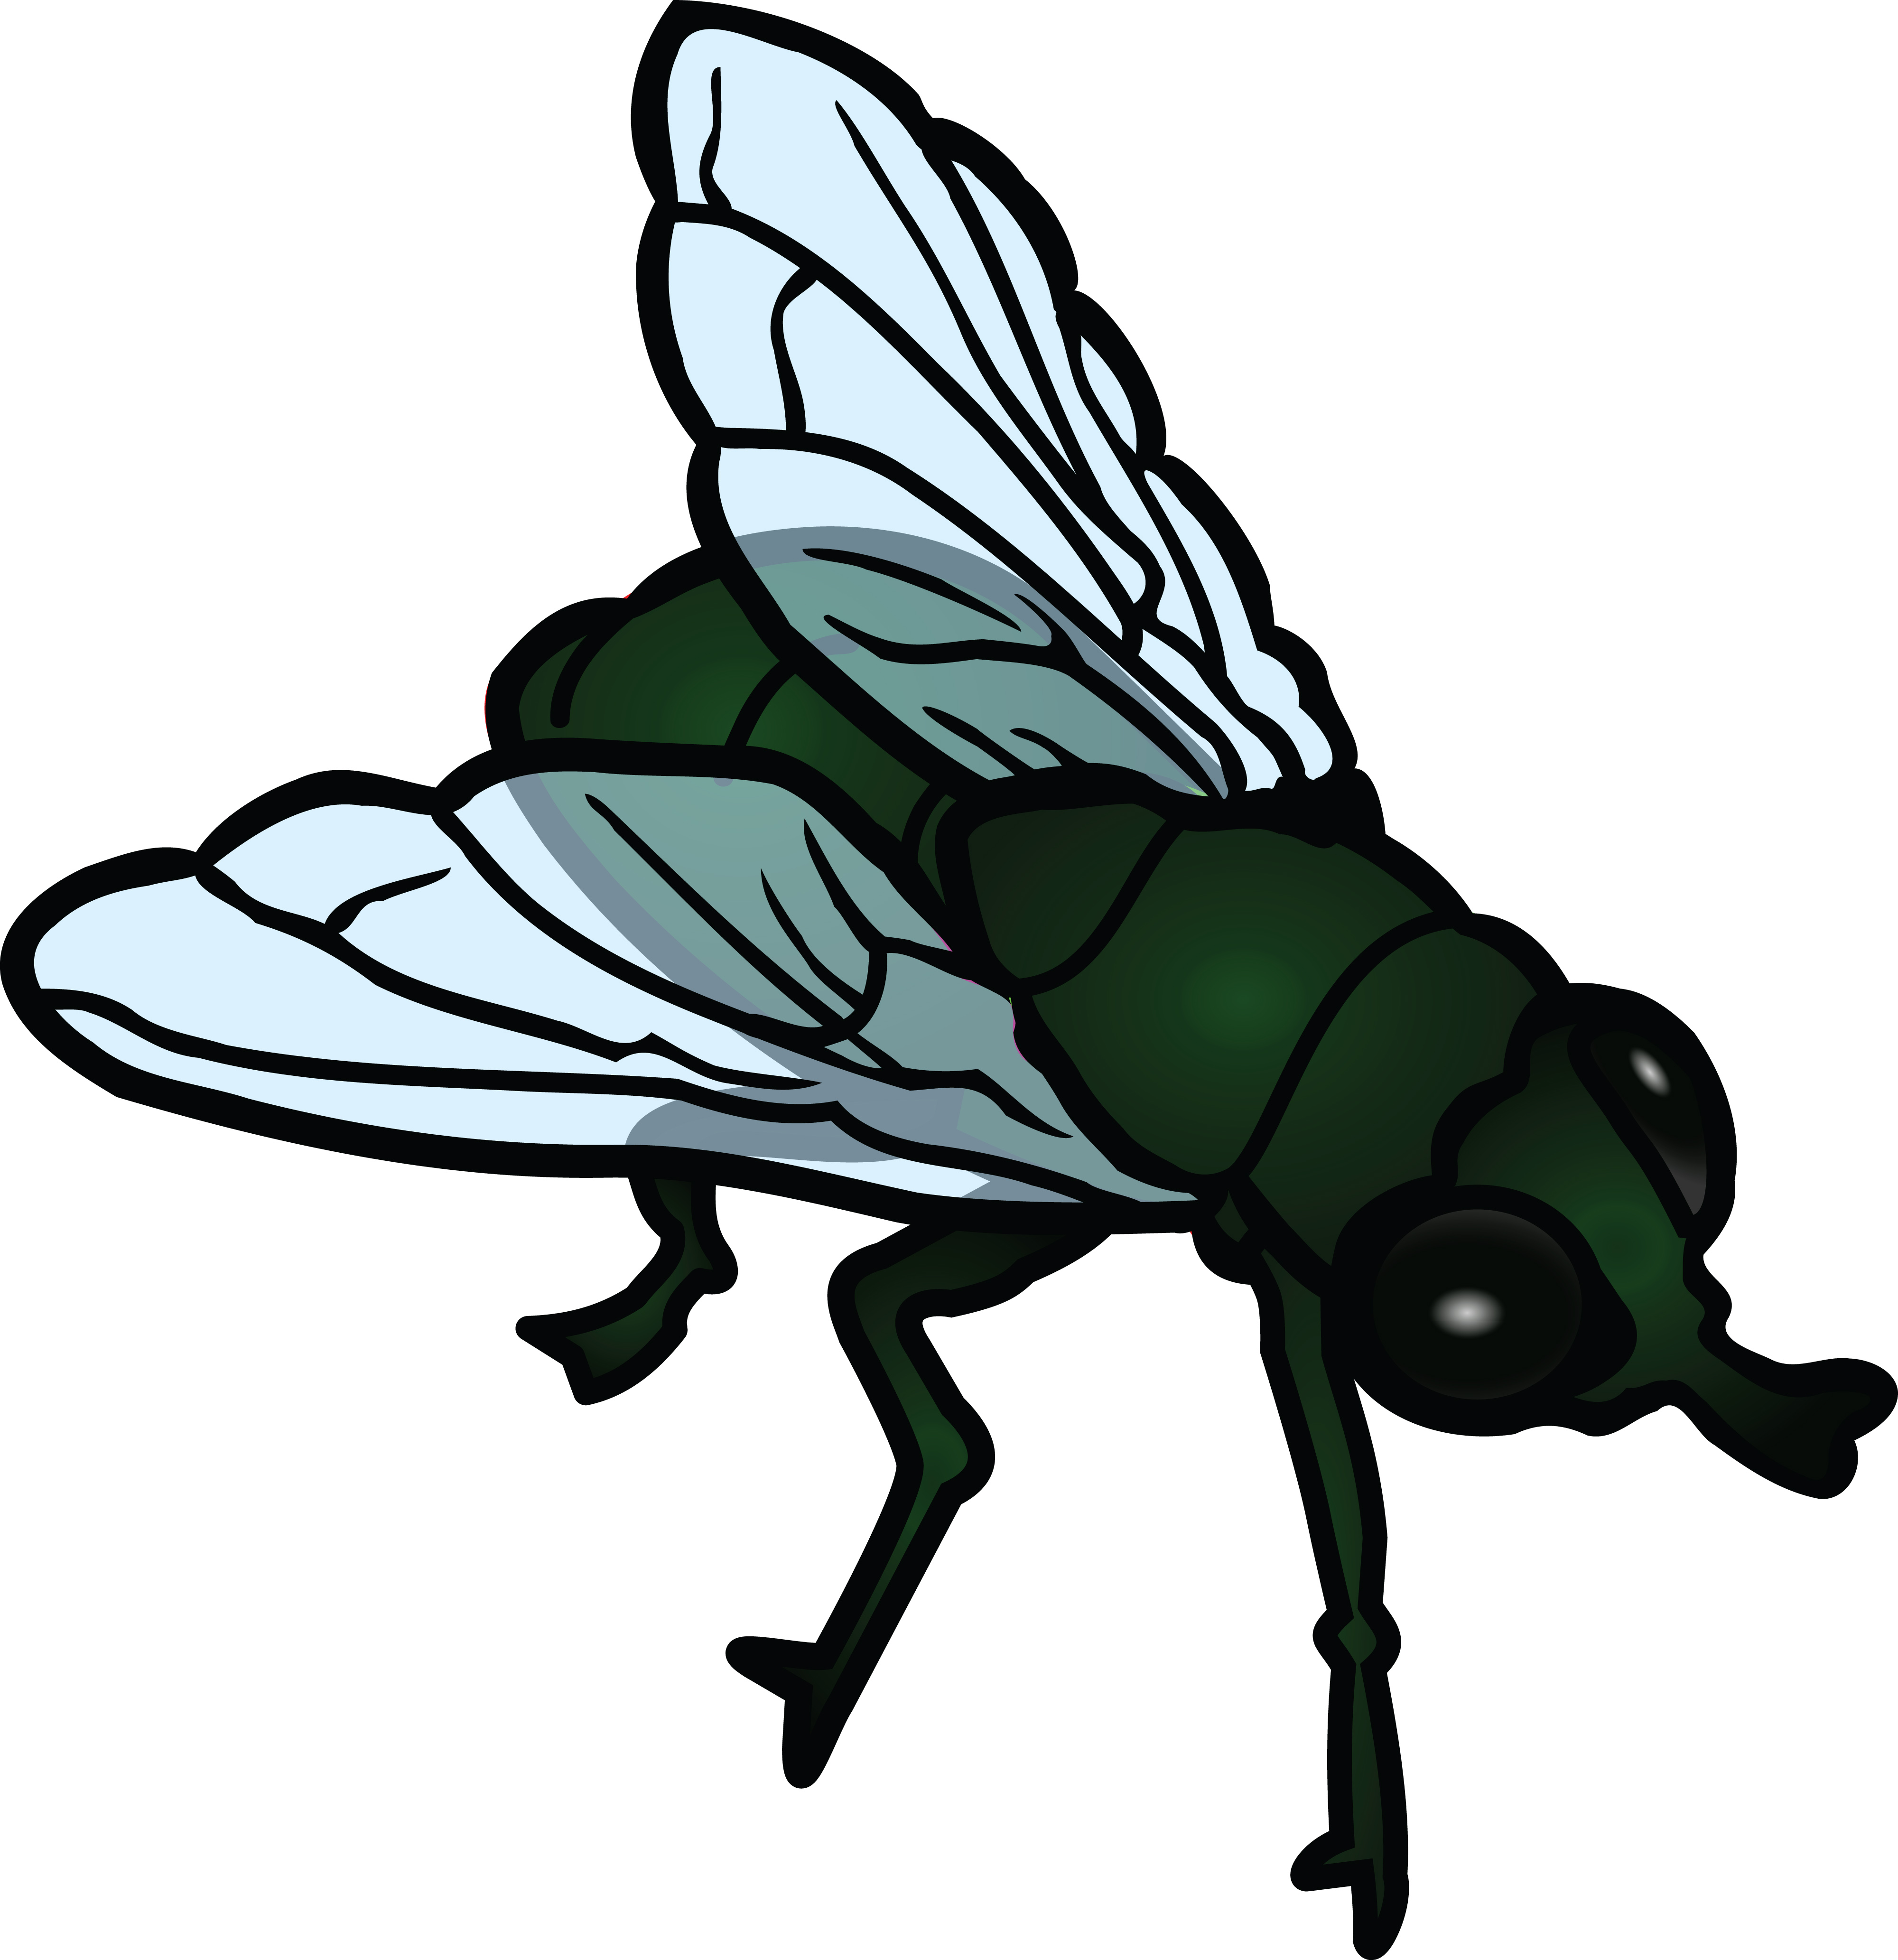 animated fly clipart - photo #14